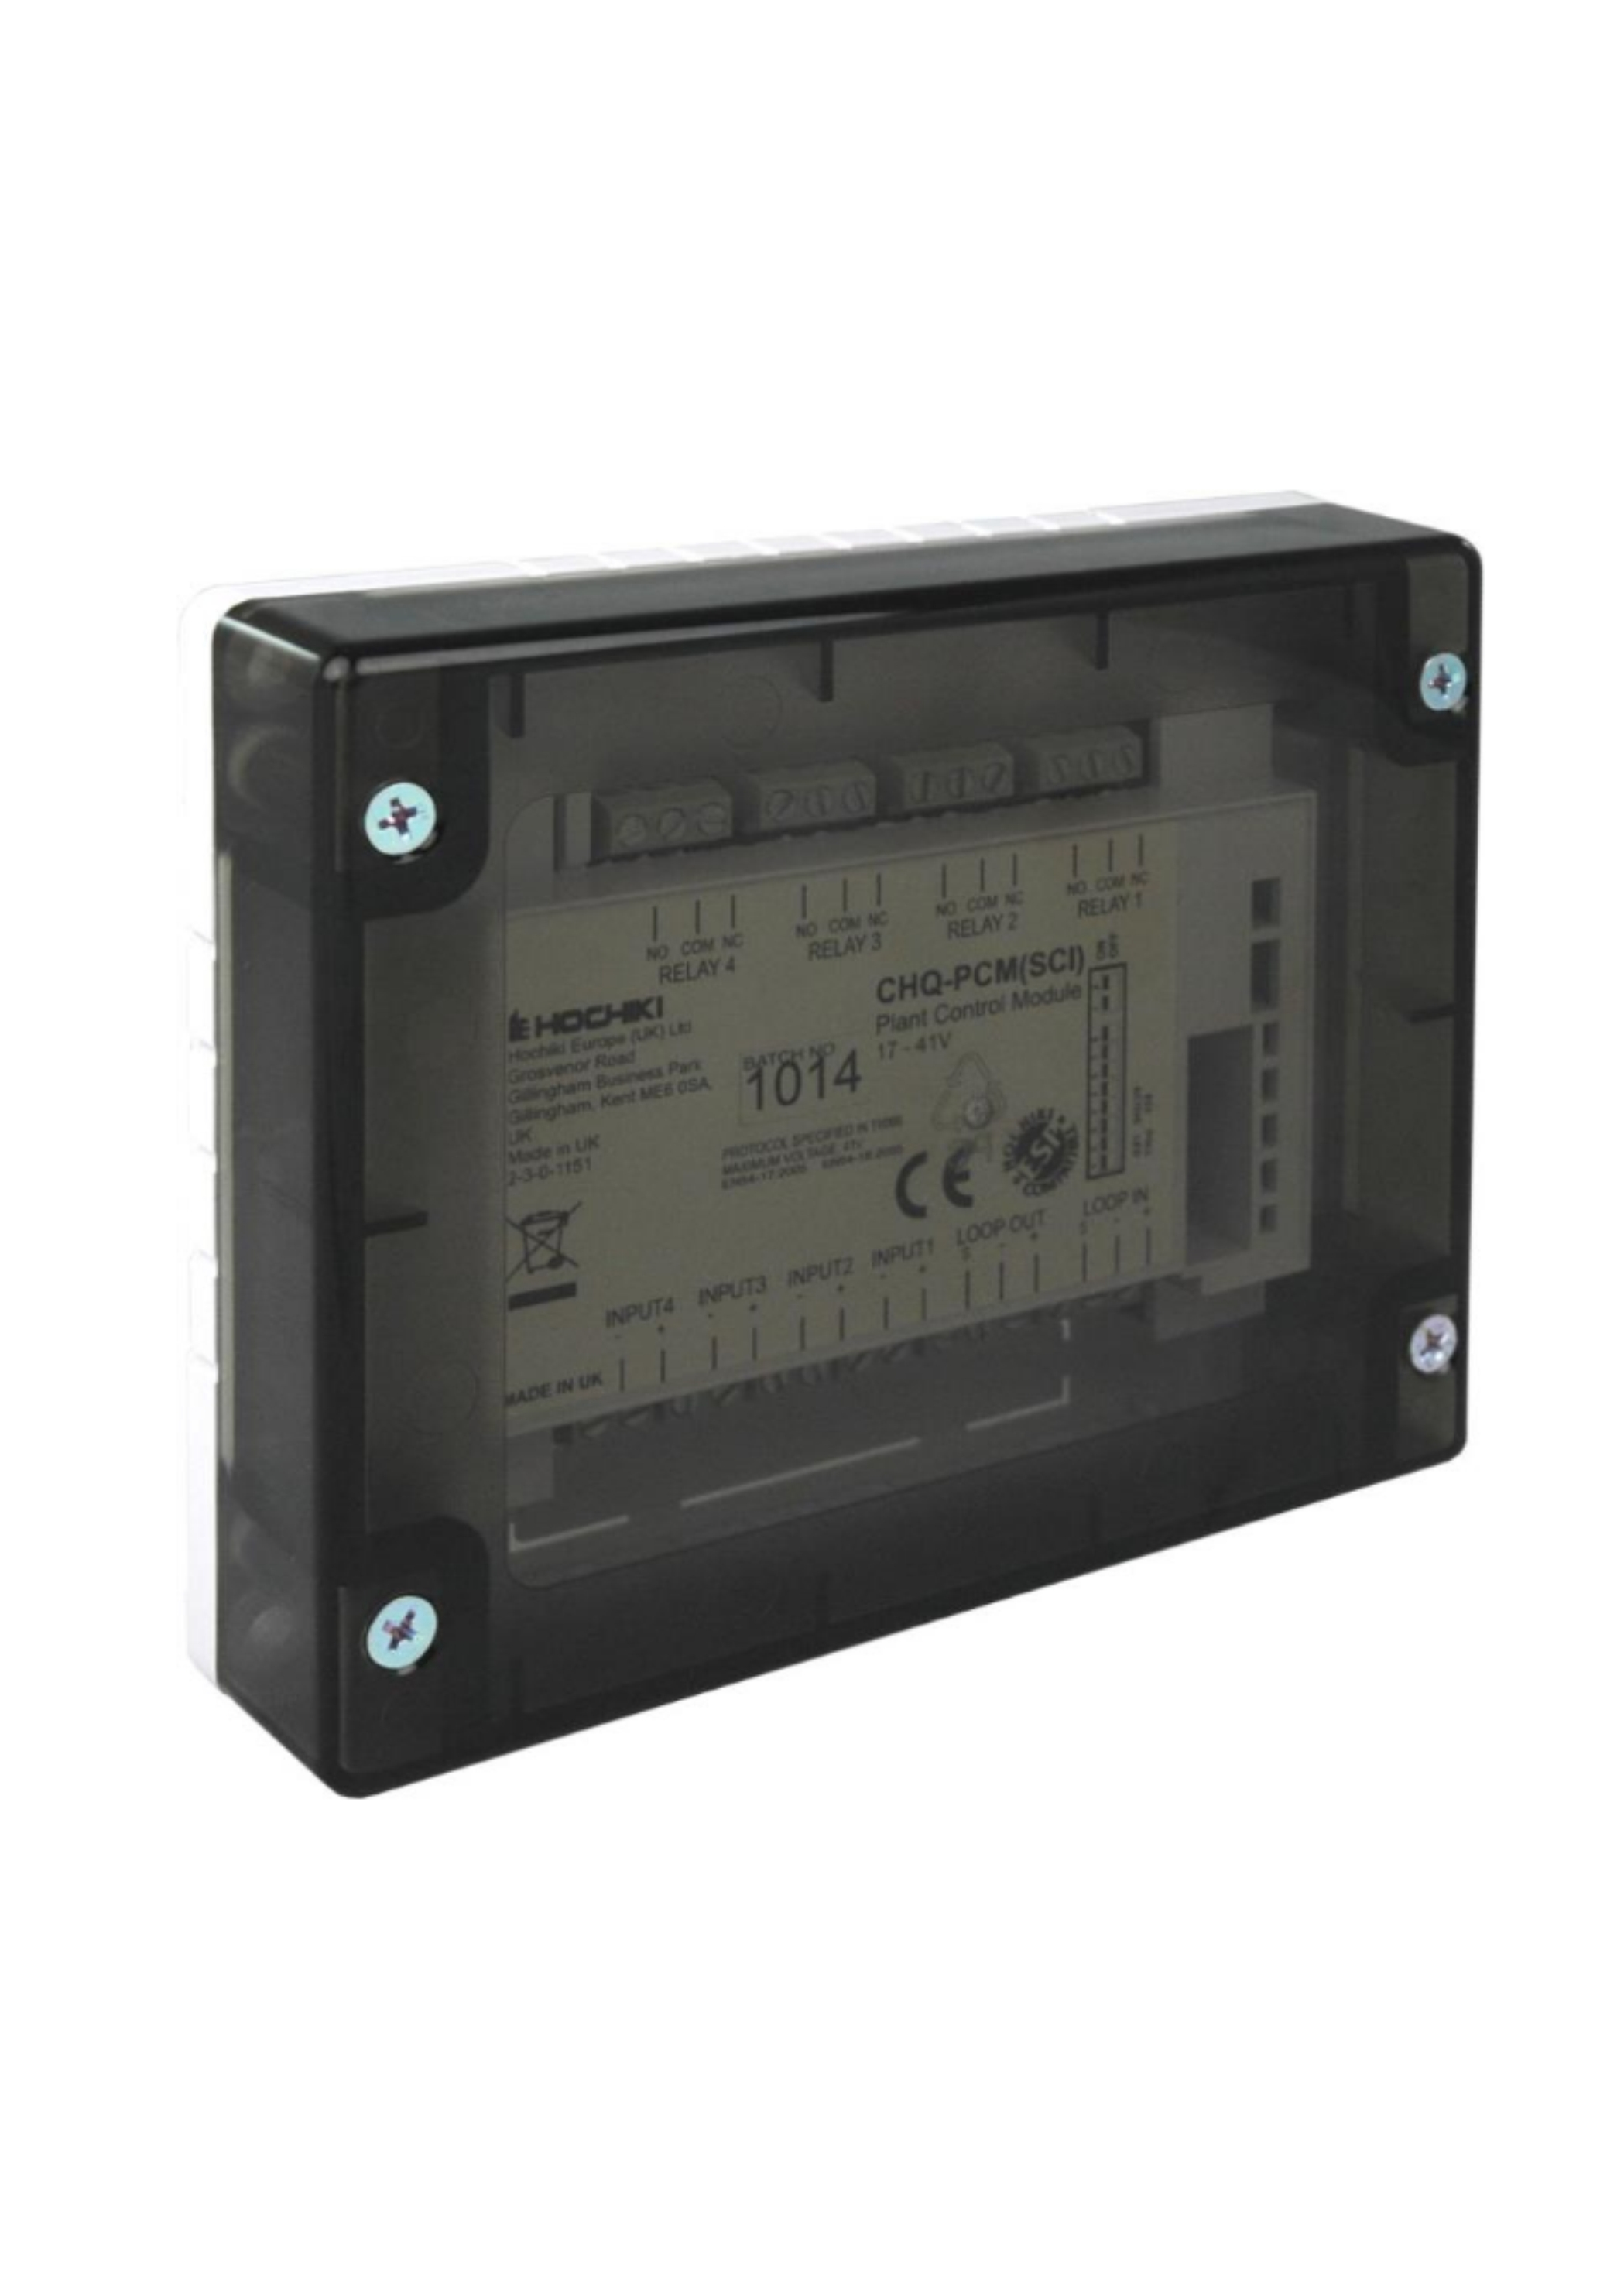 Plant Control Module with SCI 1433690-00